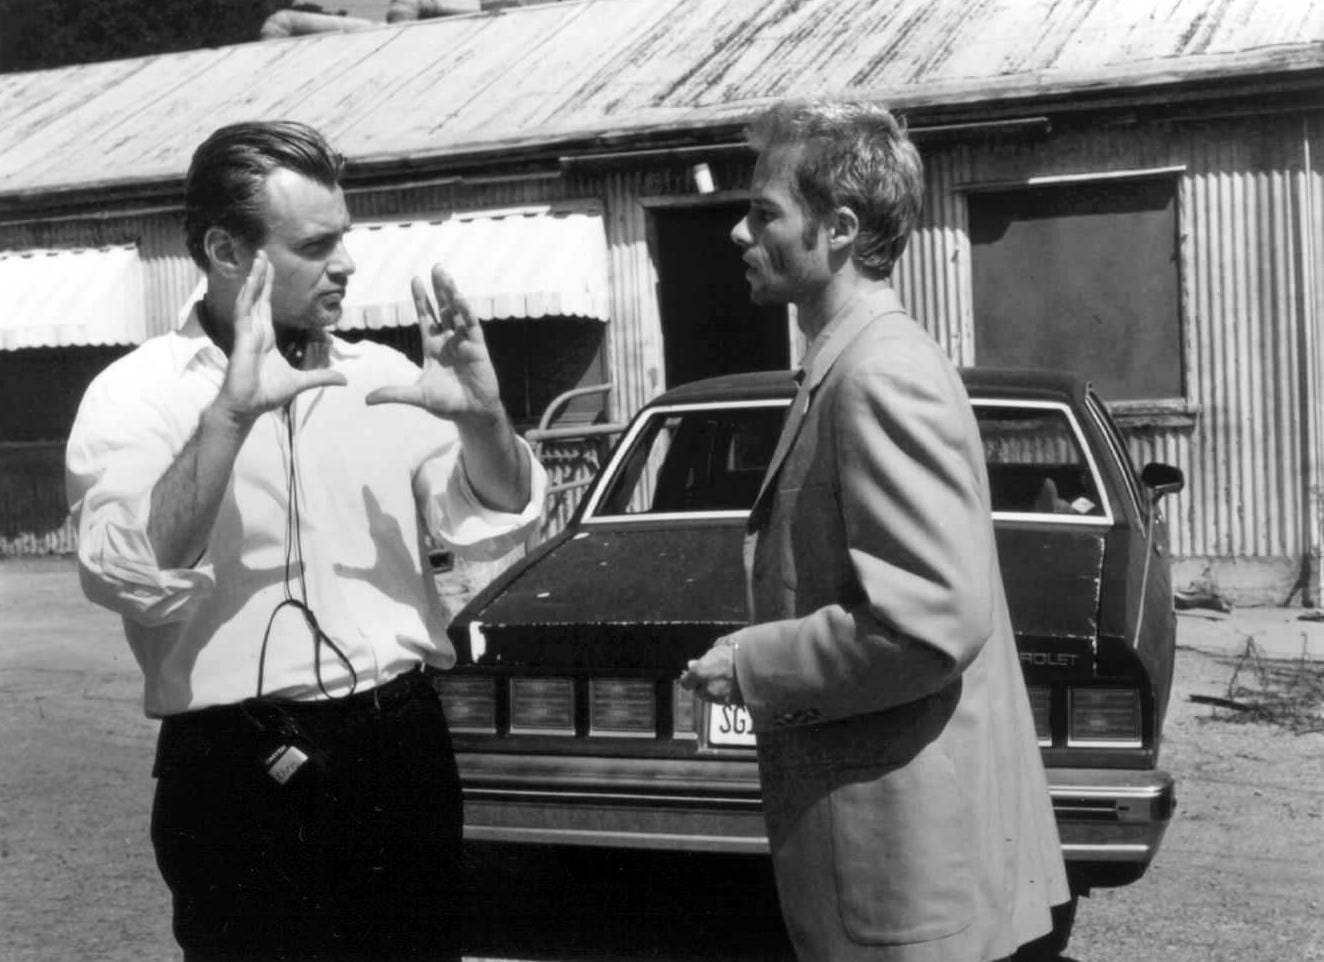 Lived All Our Best Times Left With the Worst: Christopher Nolan's 'Memento'